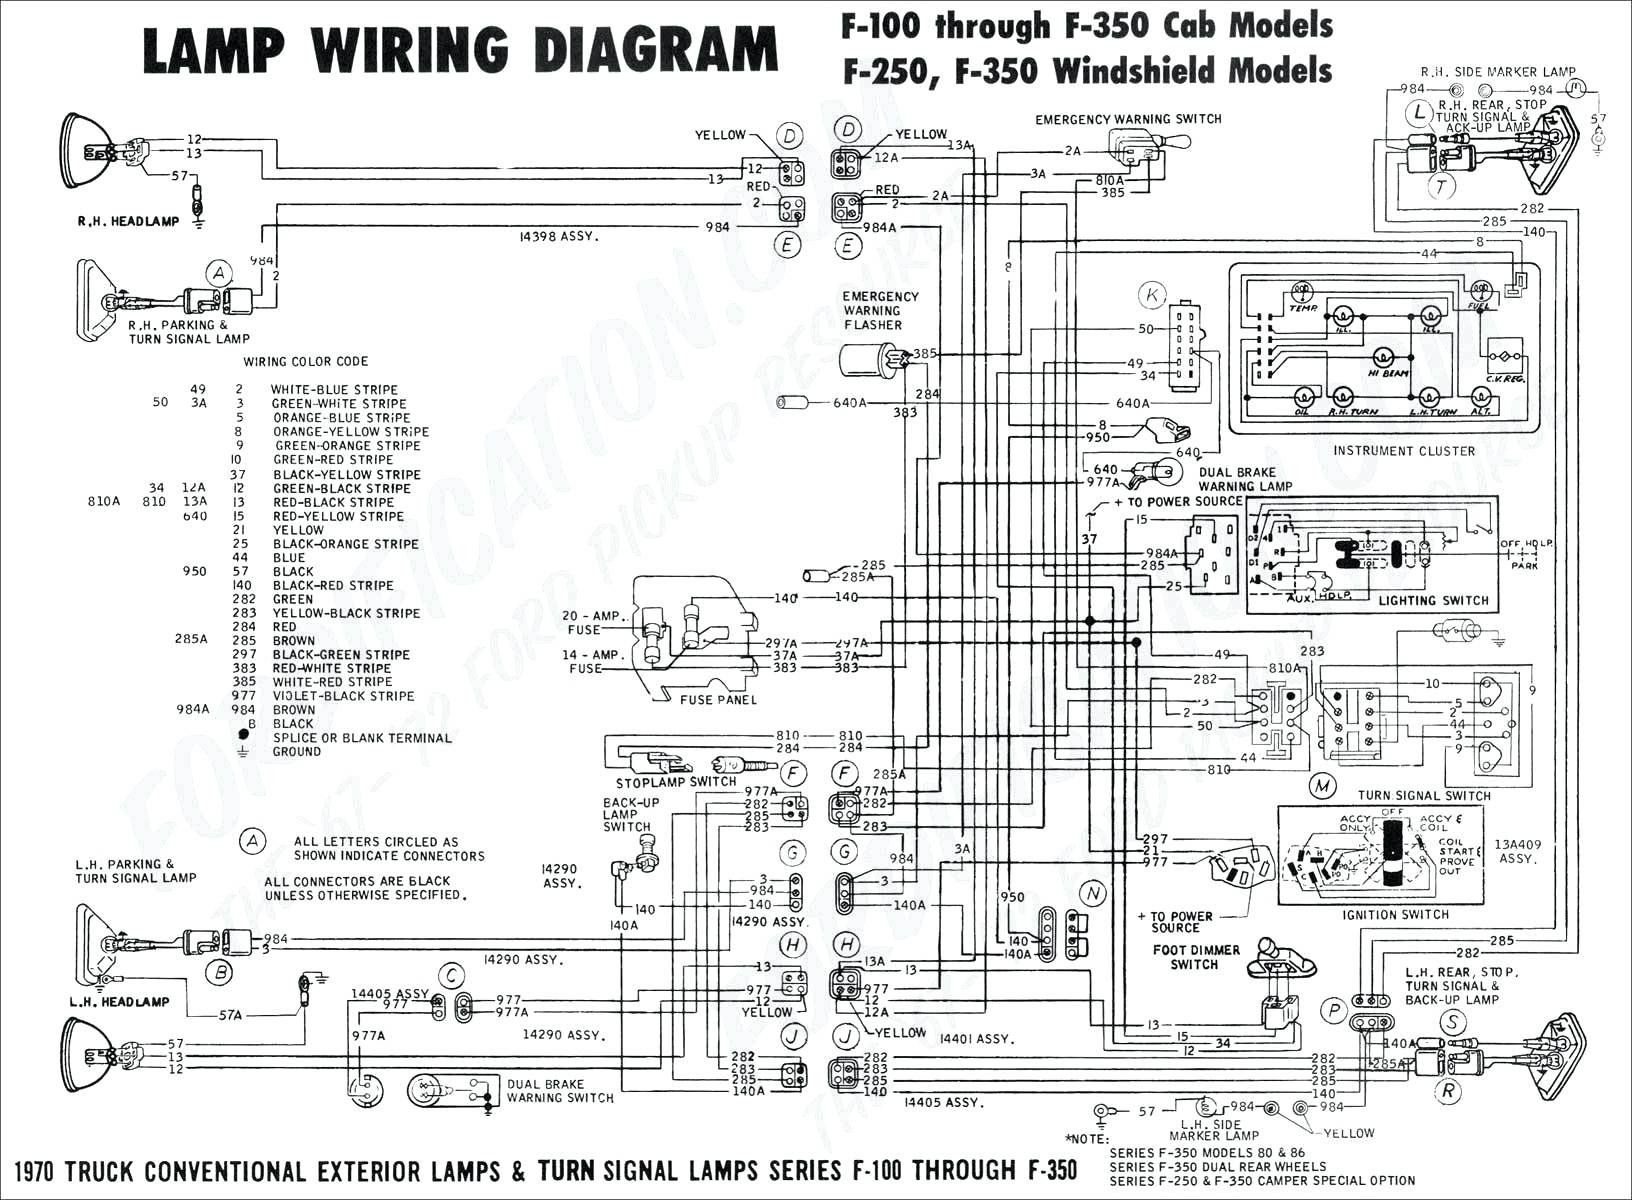 Unique Wiring Diagram Worcester Bosch Diagrams Digramssample